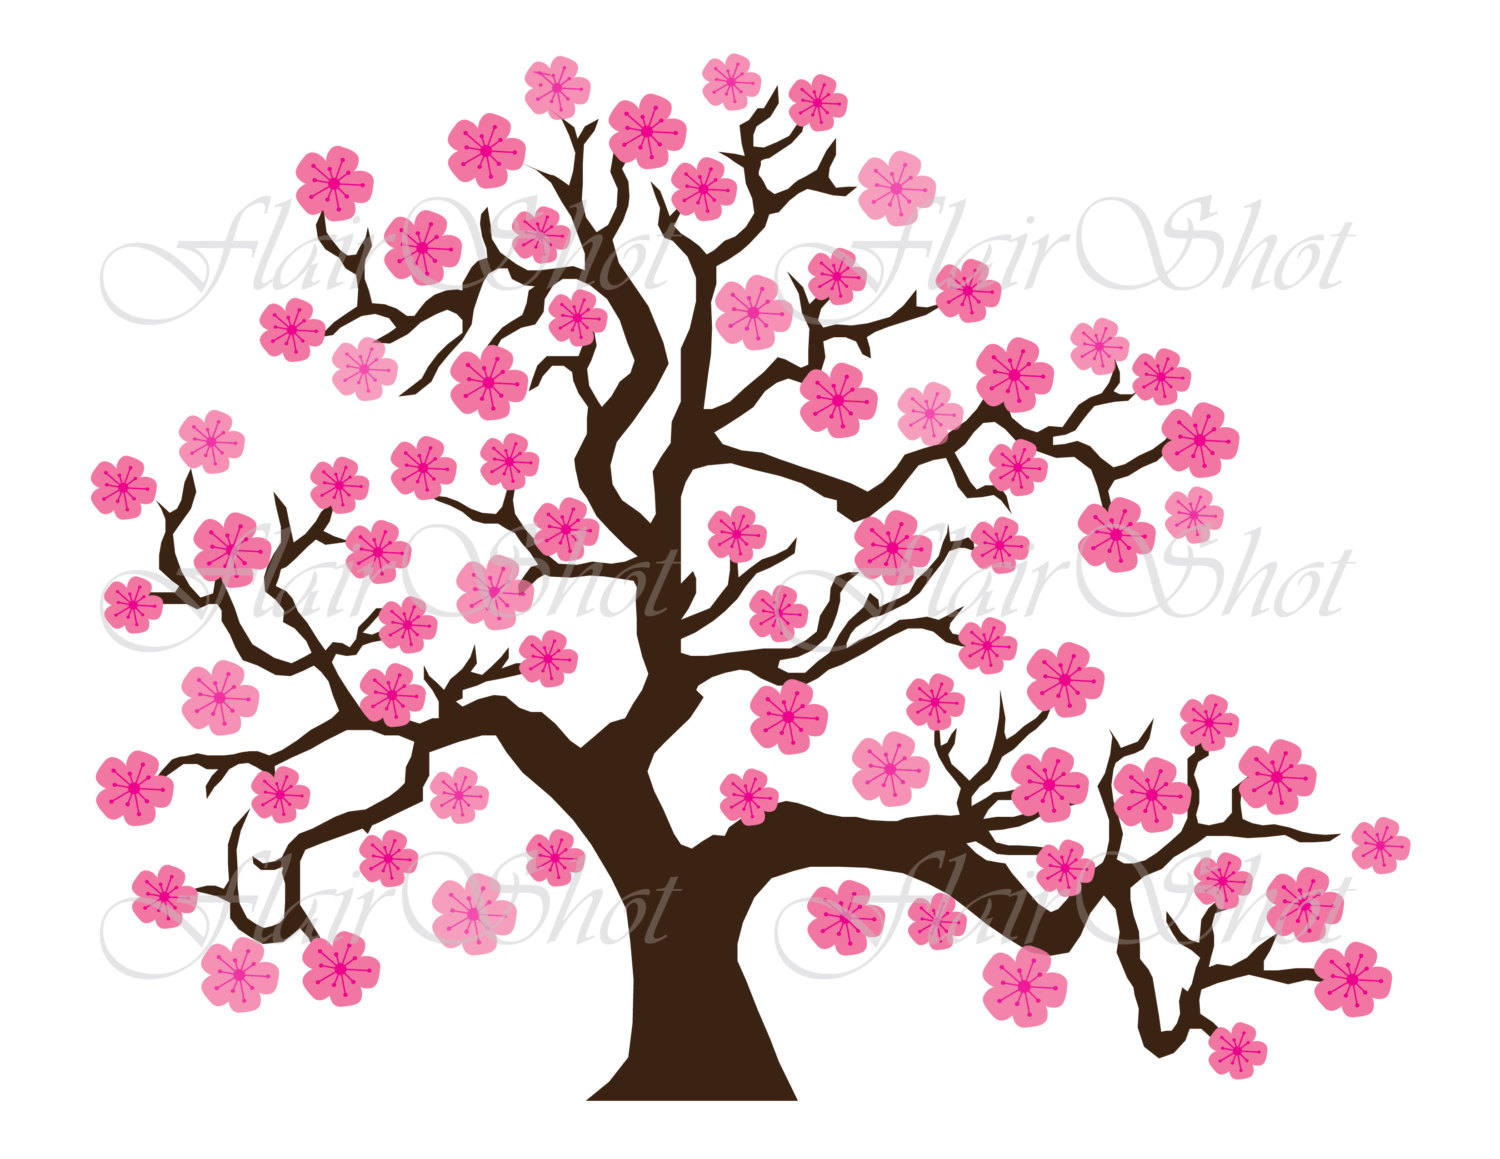 Blossom clipart #16, Download drawings